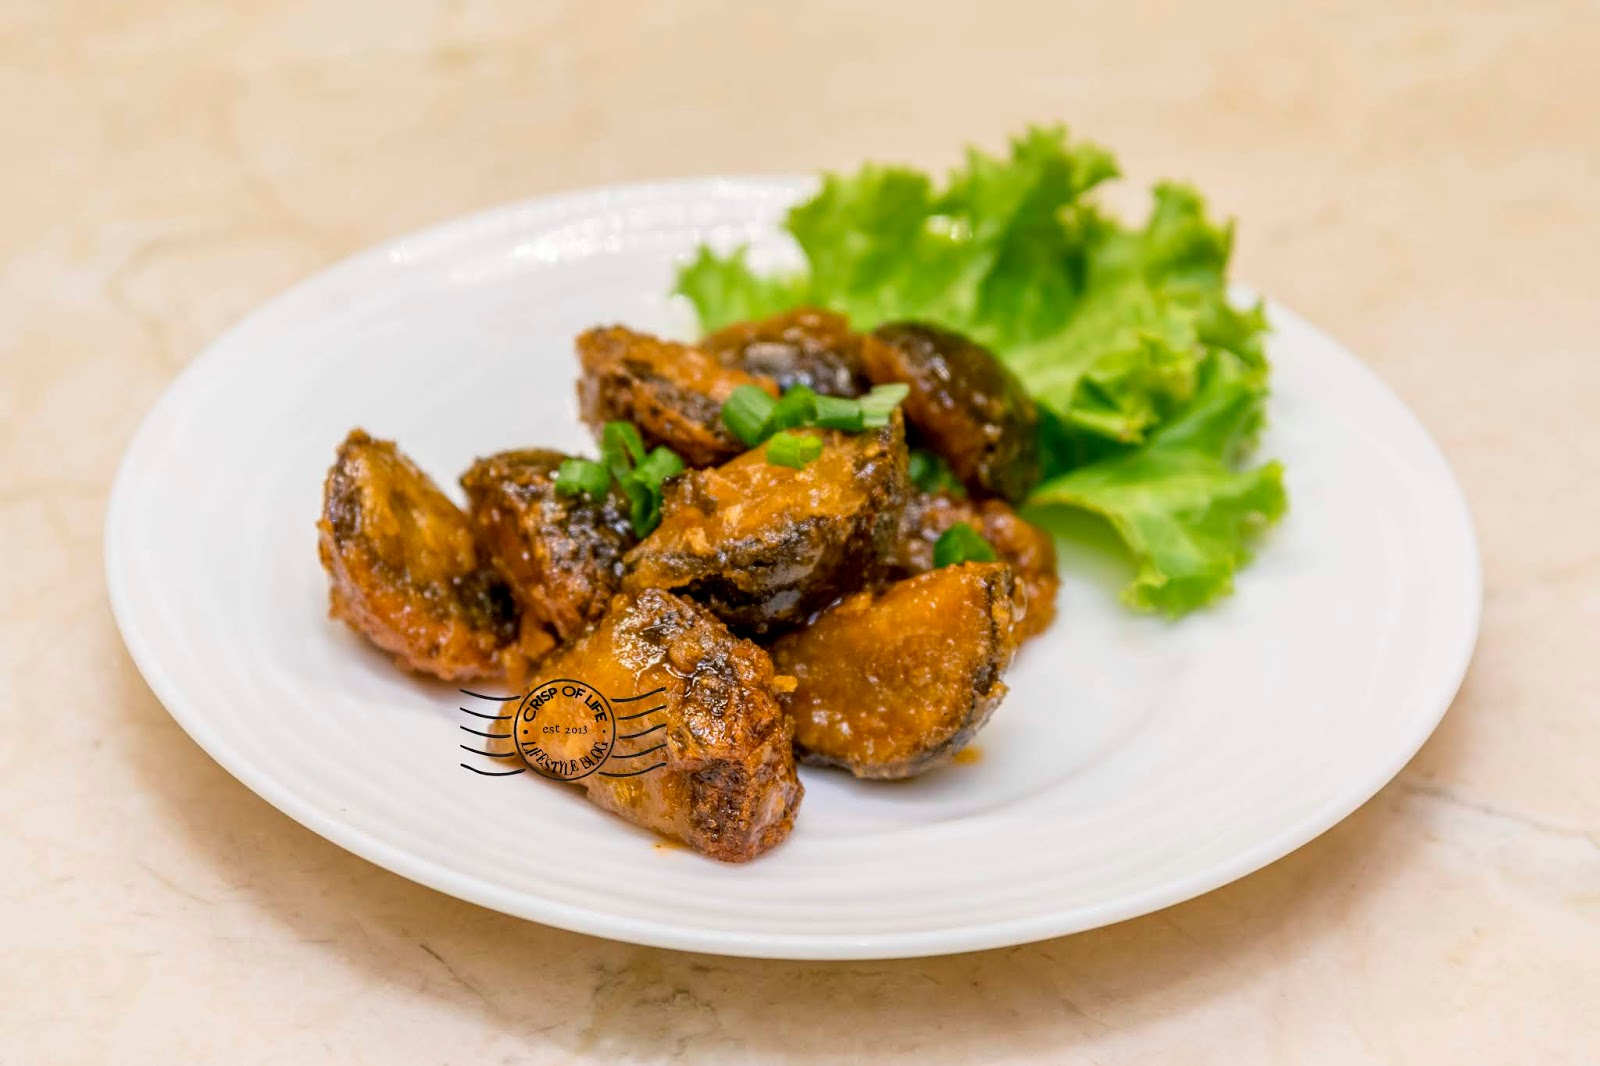 PUTIEN 莆田 New Seasonal Menu - 6 Oyster Dishes during Putien Oyster Festival